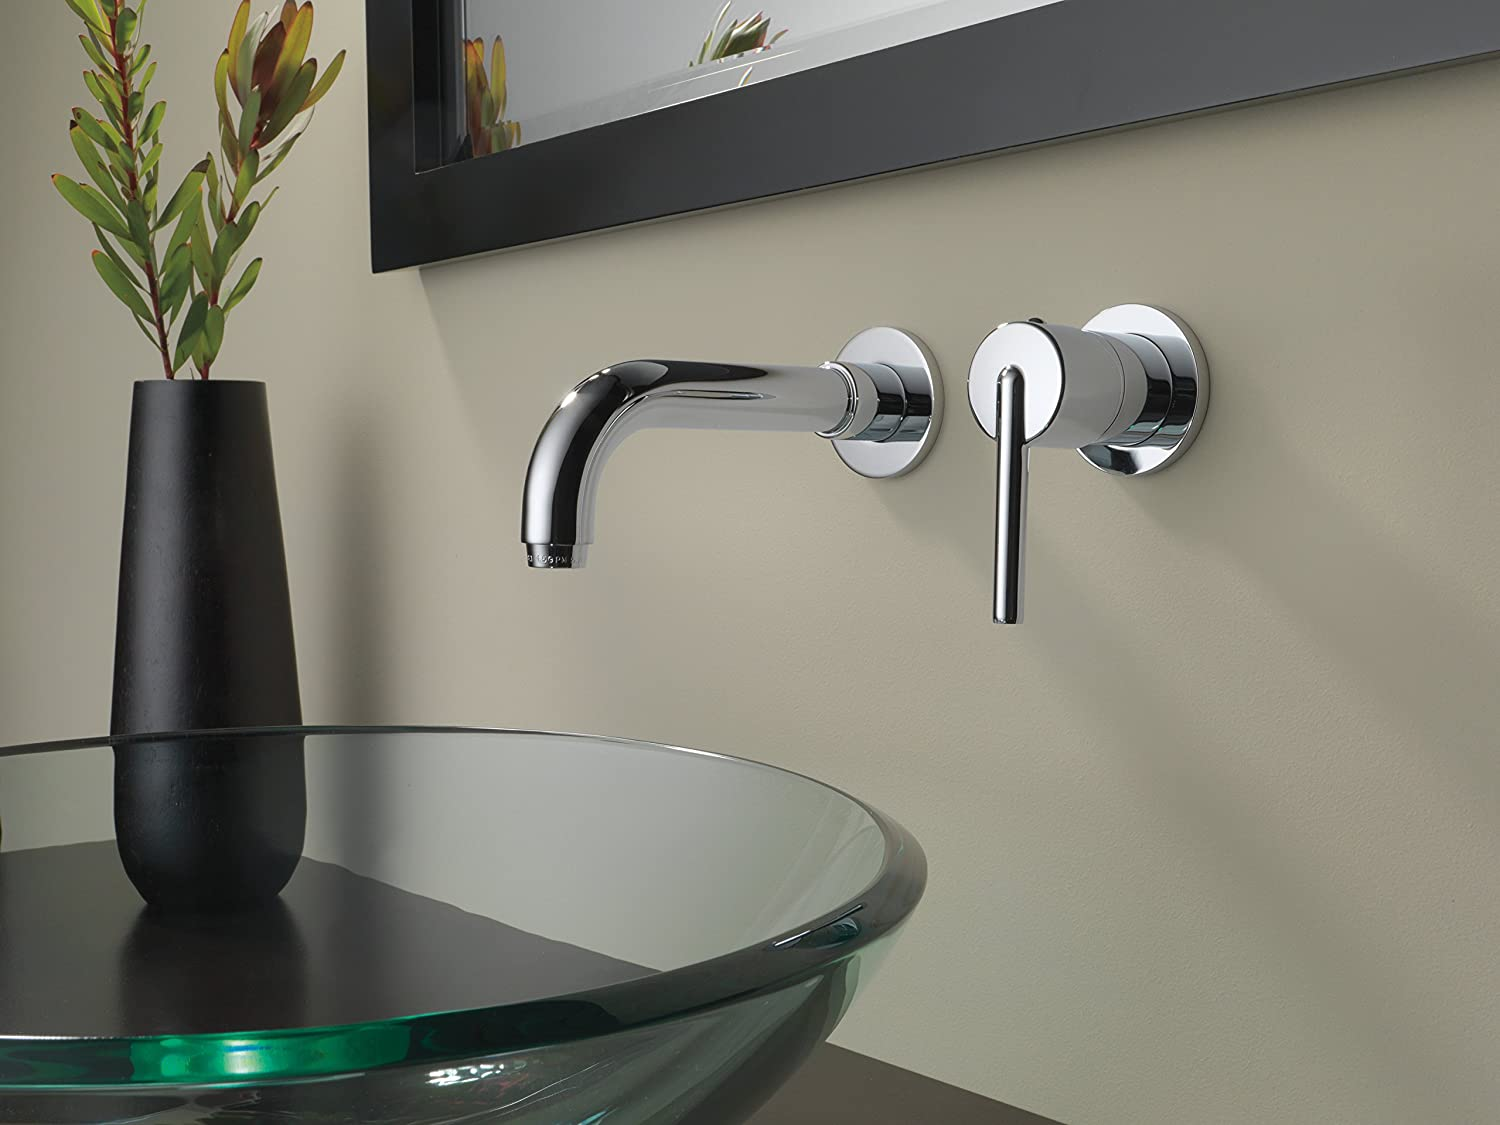 Amazon.com: Delta Faucet T3559LF-WL Trinsic Single Handle Wall Mount ...